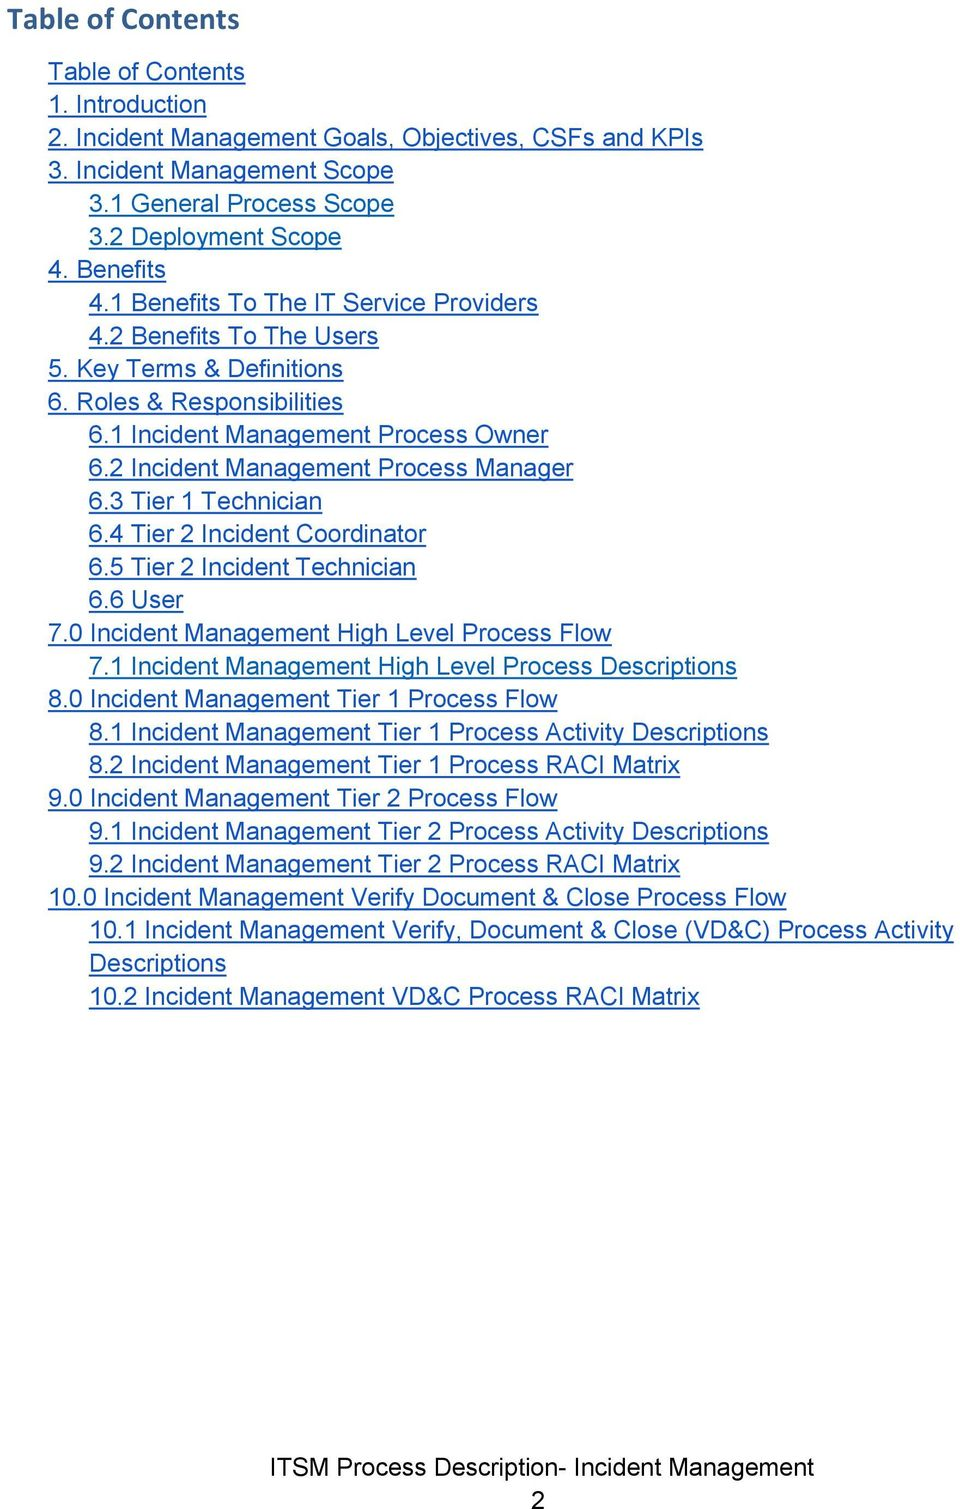 3 Tier 1 Technician 6.4 Tier 2 Incident Coordinator 6.5 Tier 2 Incident Technician 6.6 User 7.0 Incident Management High Level Process Flow 7.1 Incident Management High Level Process Descriptions 8.